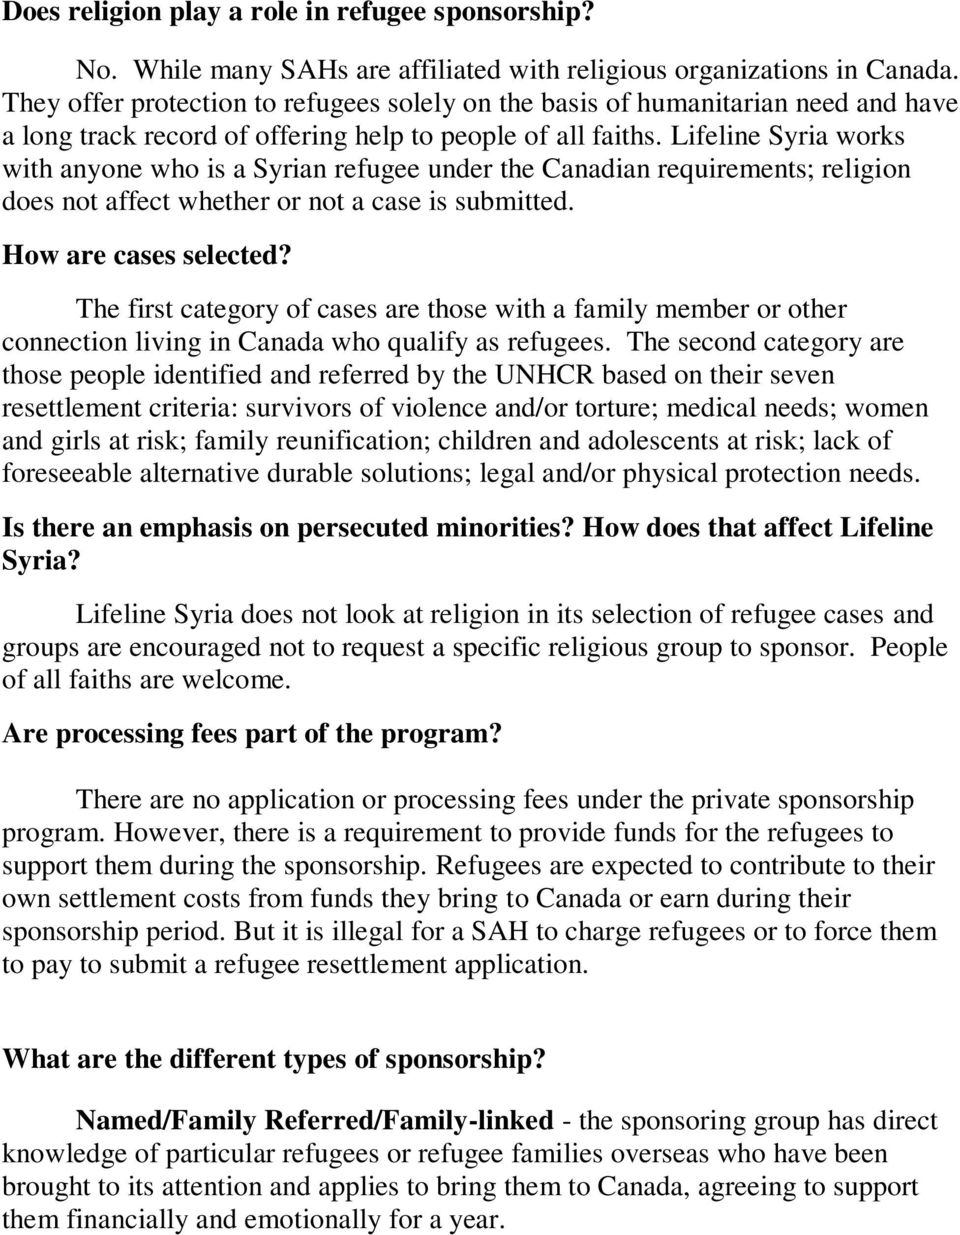 Lifeline Syria works with anyone who is a Syrian refugee under the Canadian requirements; religion does not affect whether or not a case is submitted. How are cases selected?